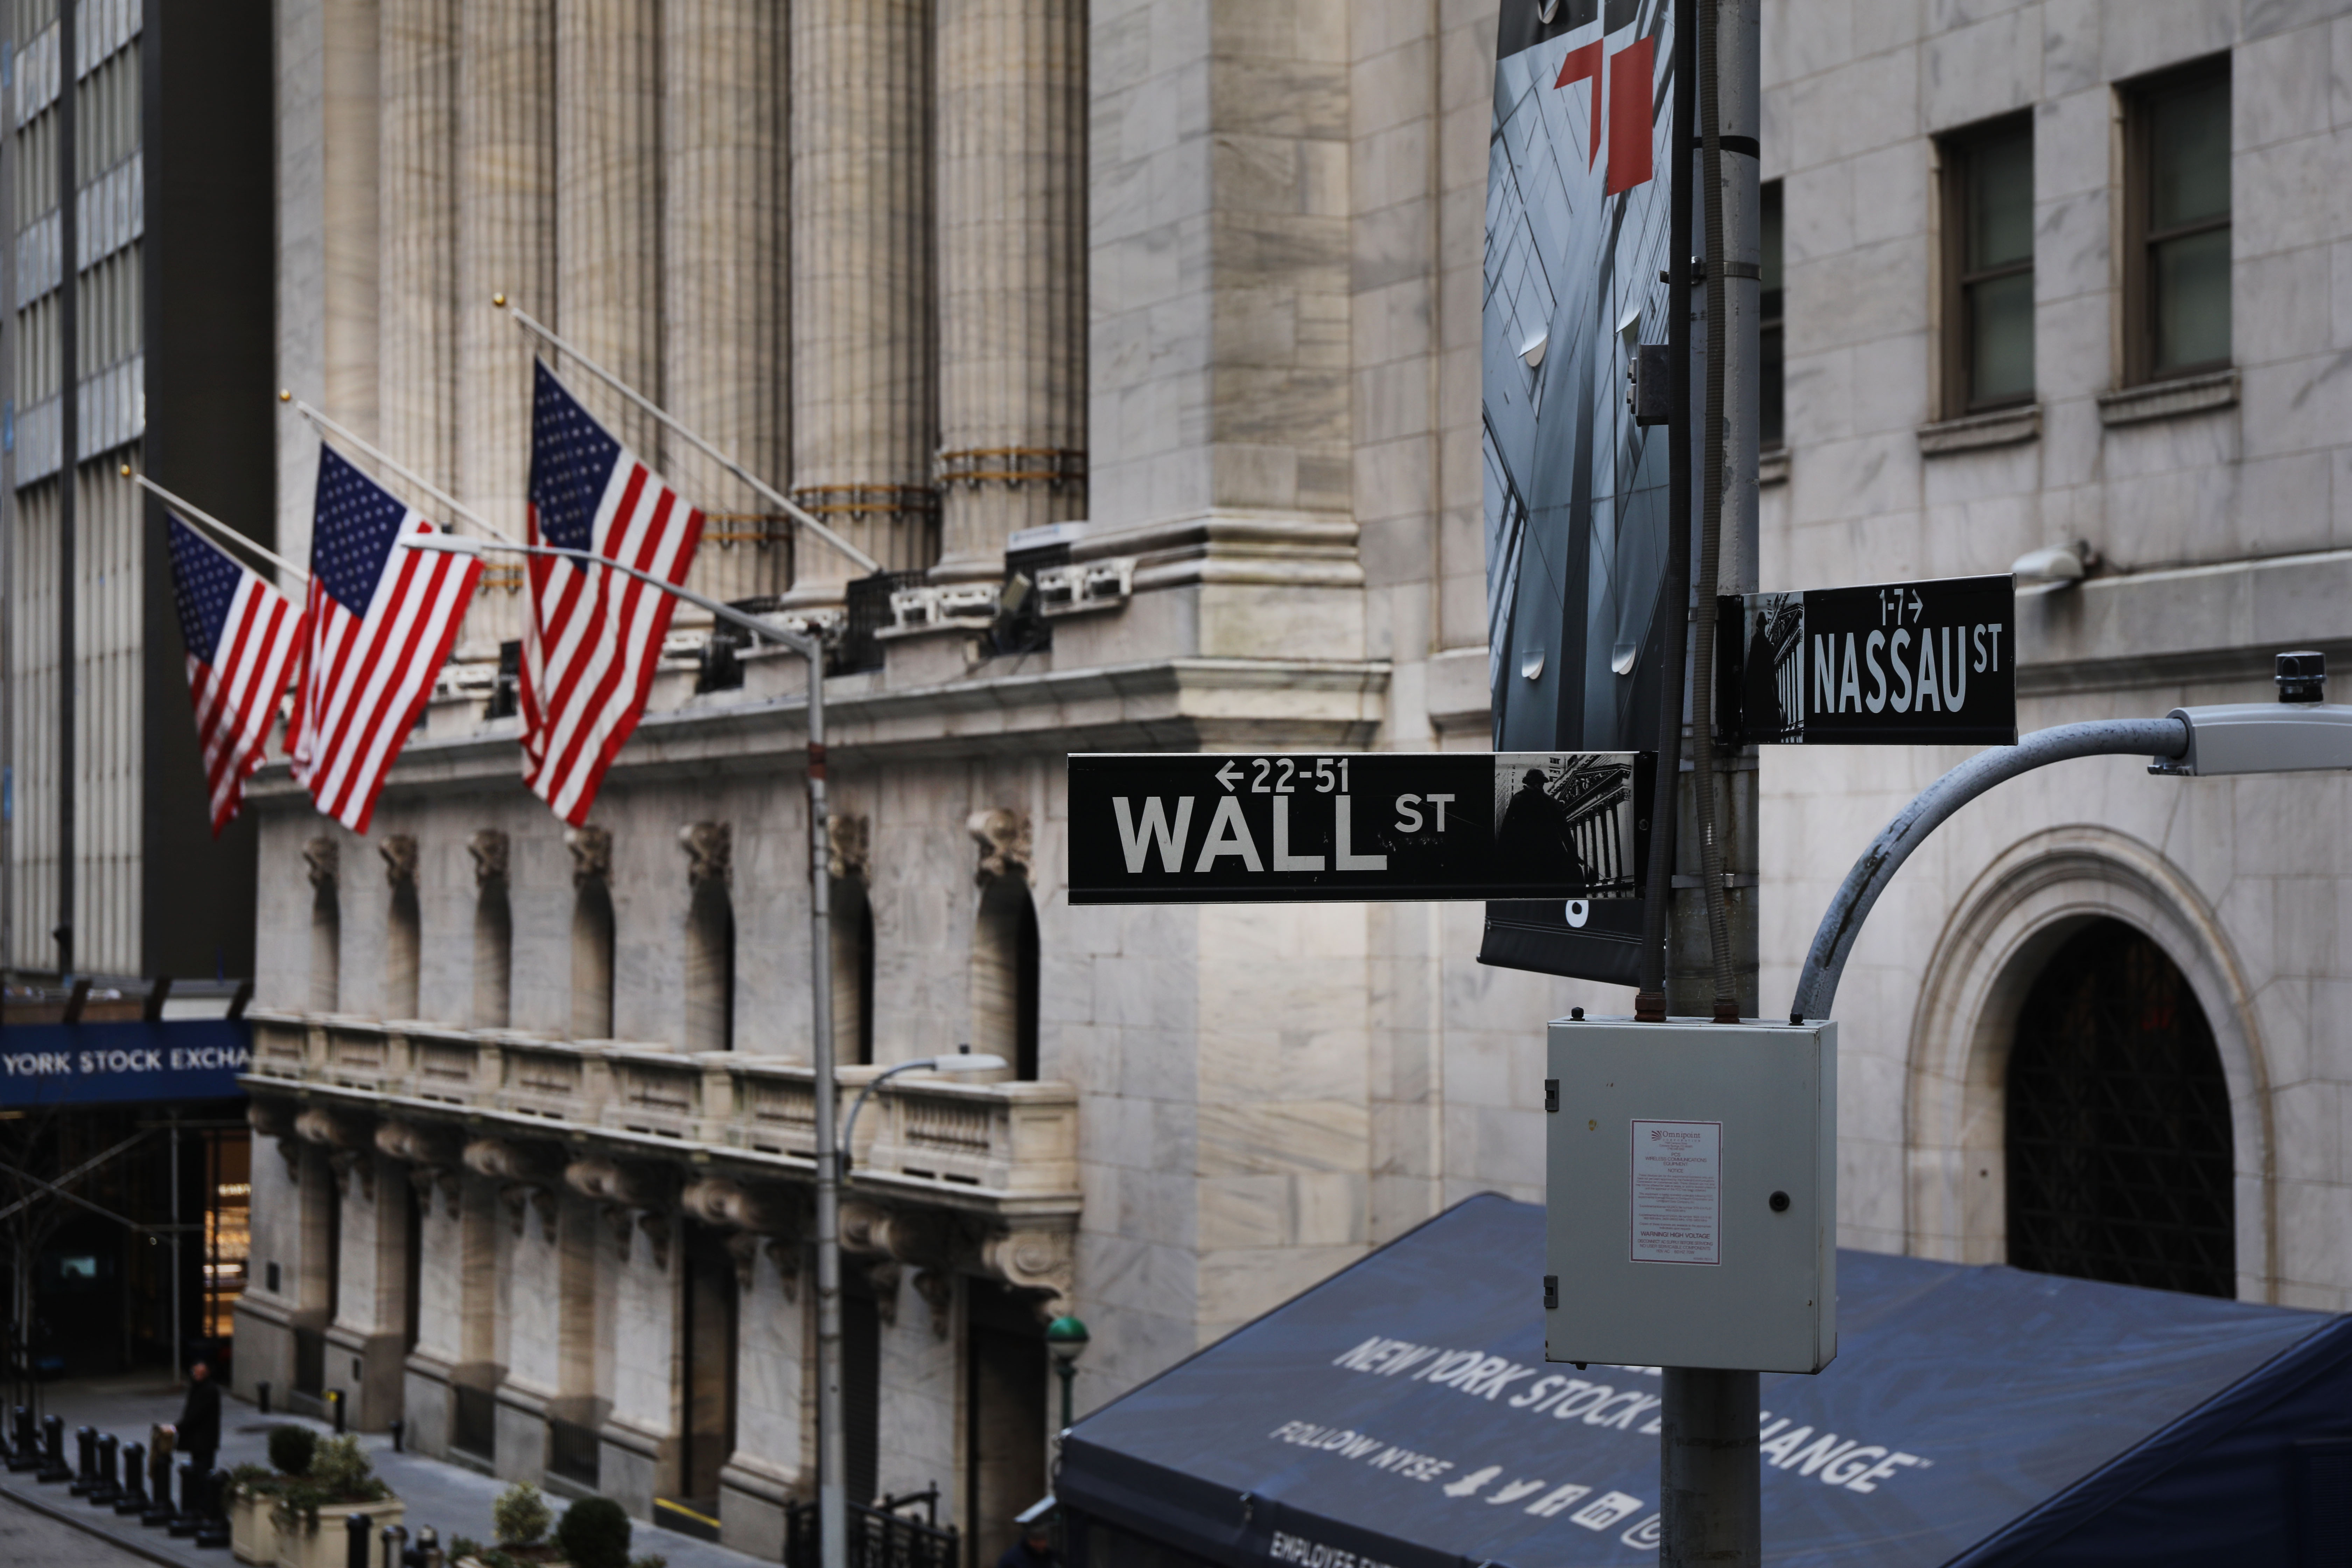 The New York Stock Exchange building on Wall Street in New York City.